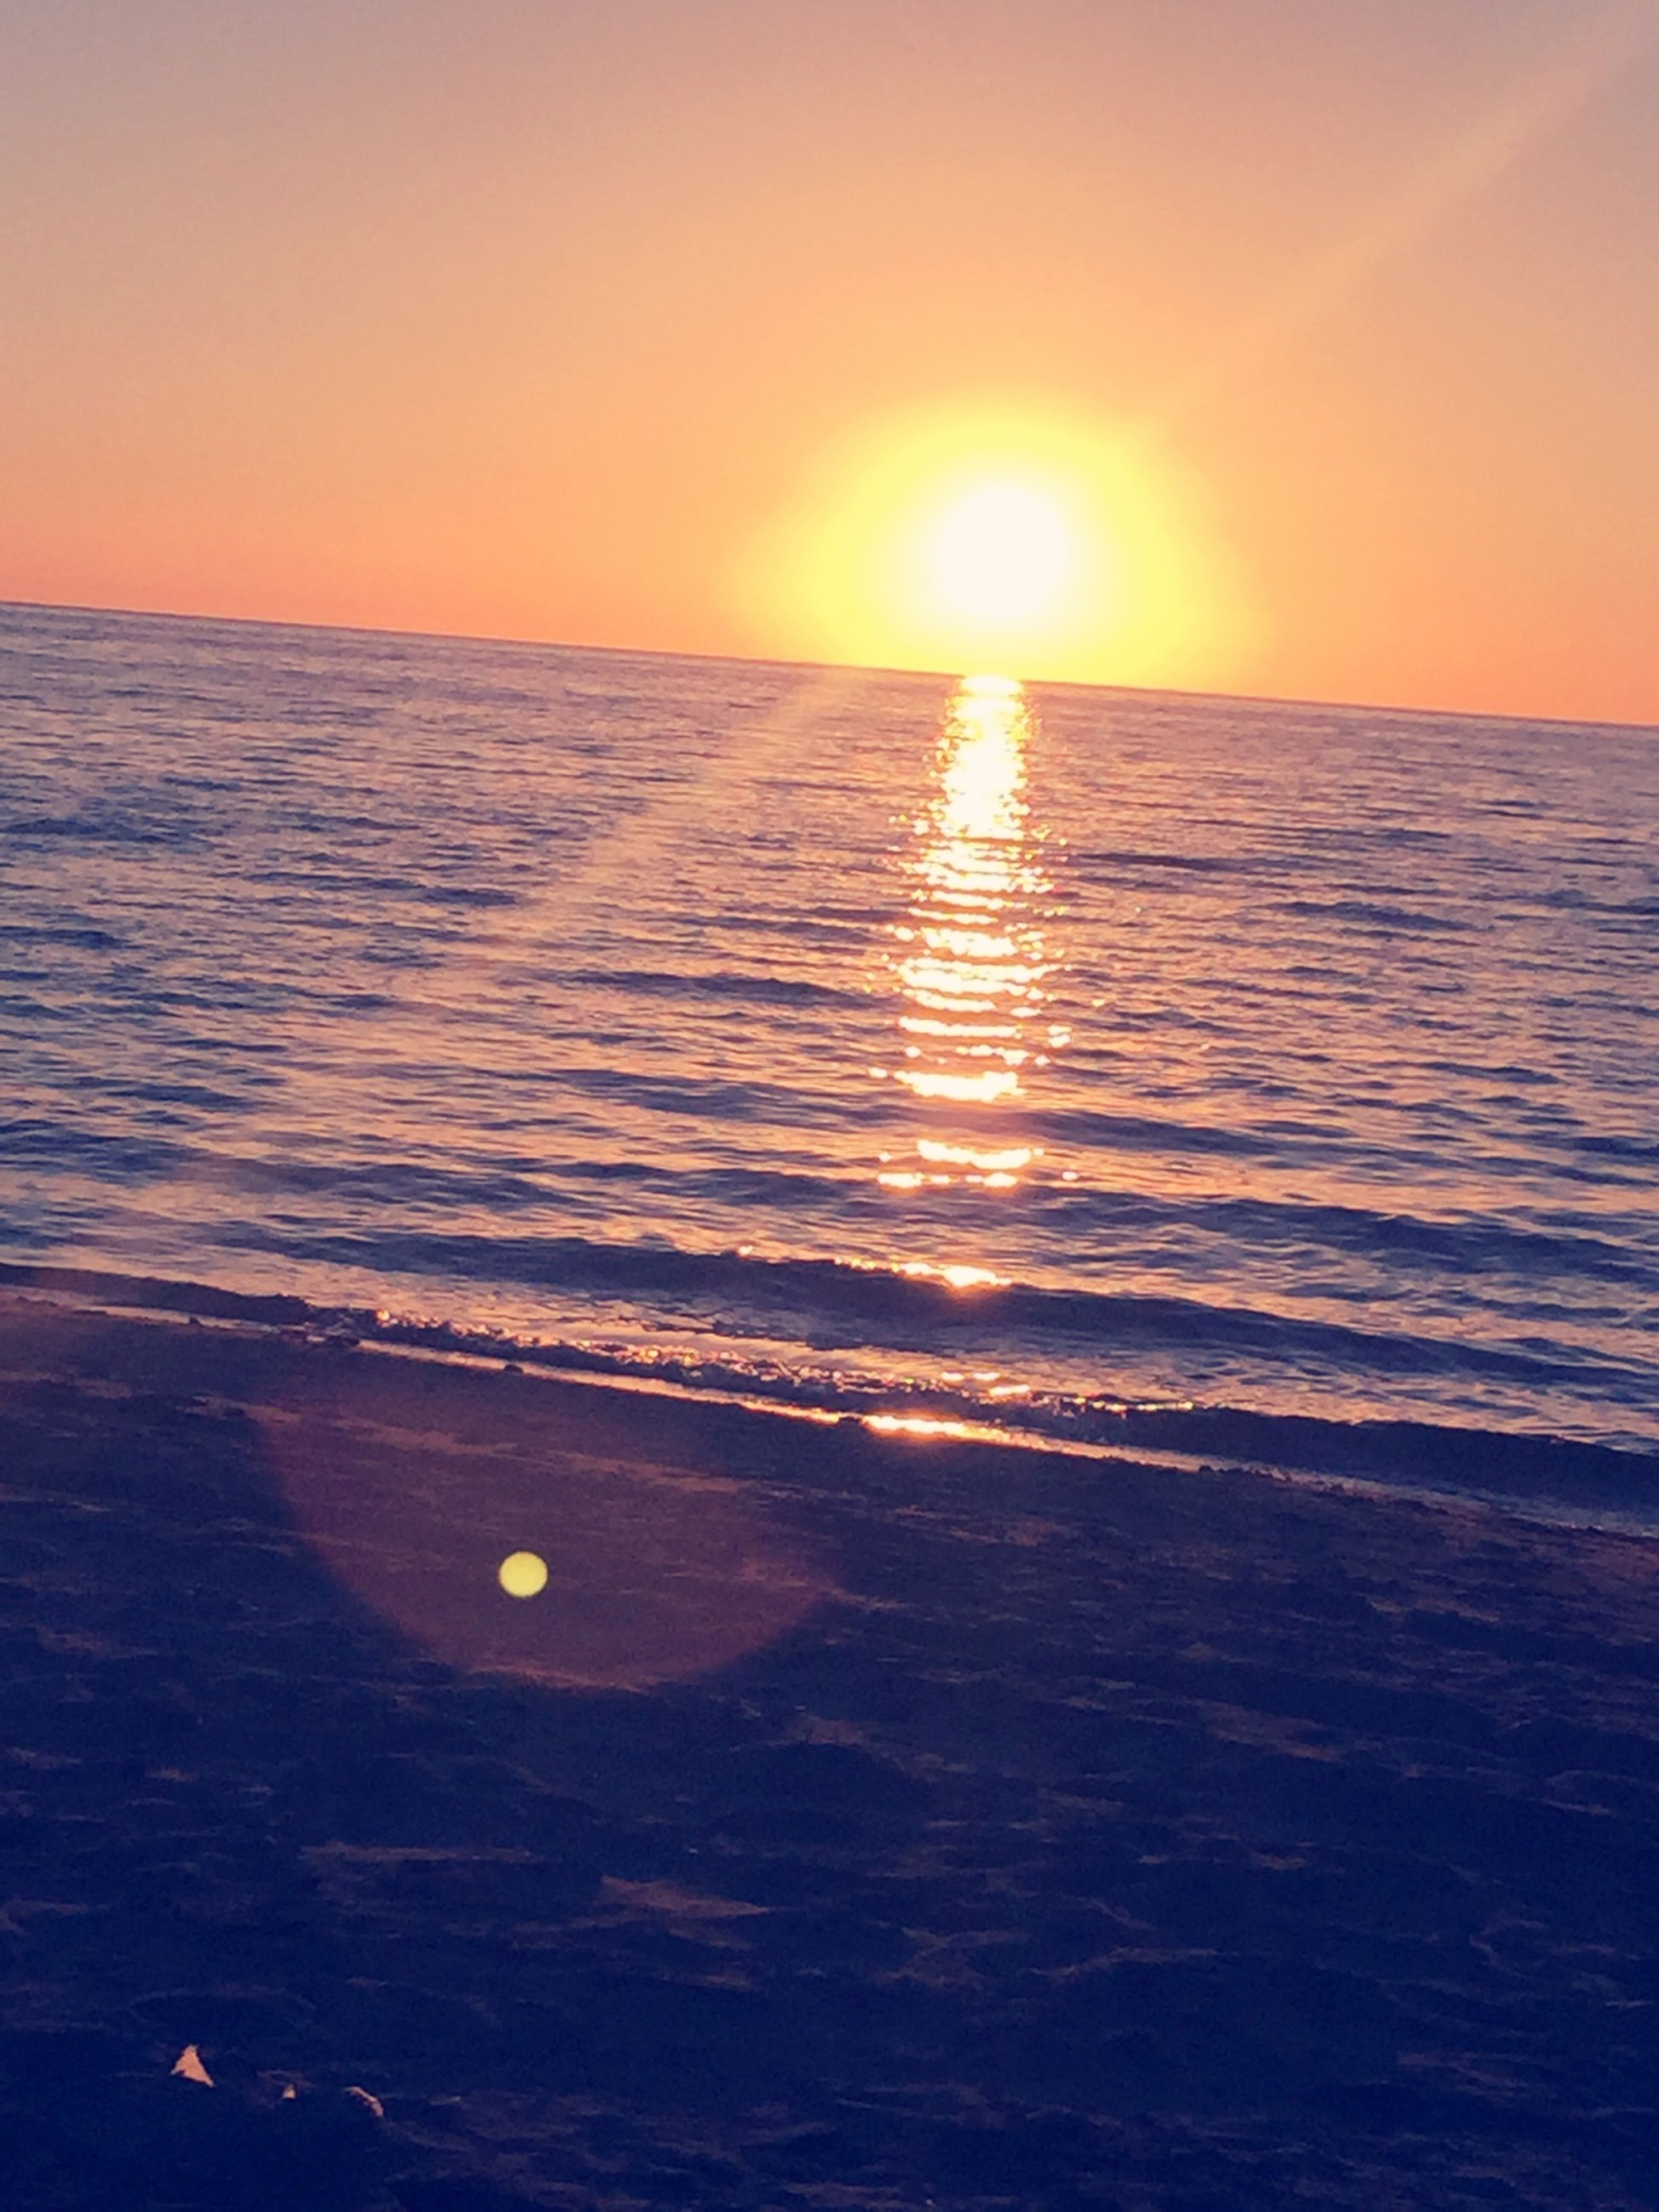 water, sunset, sea, sun, scenics, tranquil scene, horizon over water, beauty in nature, reflection, tranquility, orange color, rippled, waterfront, idyllic, nature, sunlight, clear sky, sky, seascape, outdoors